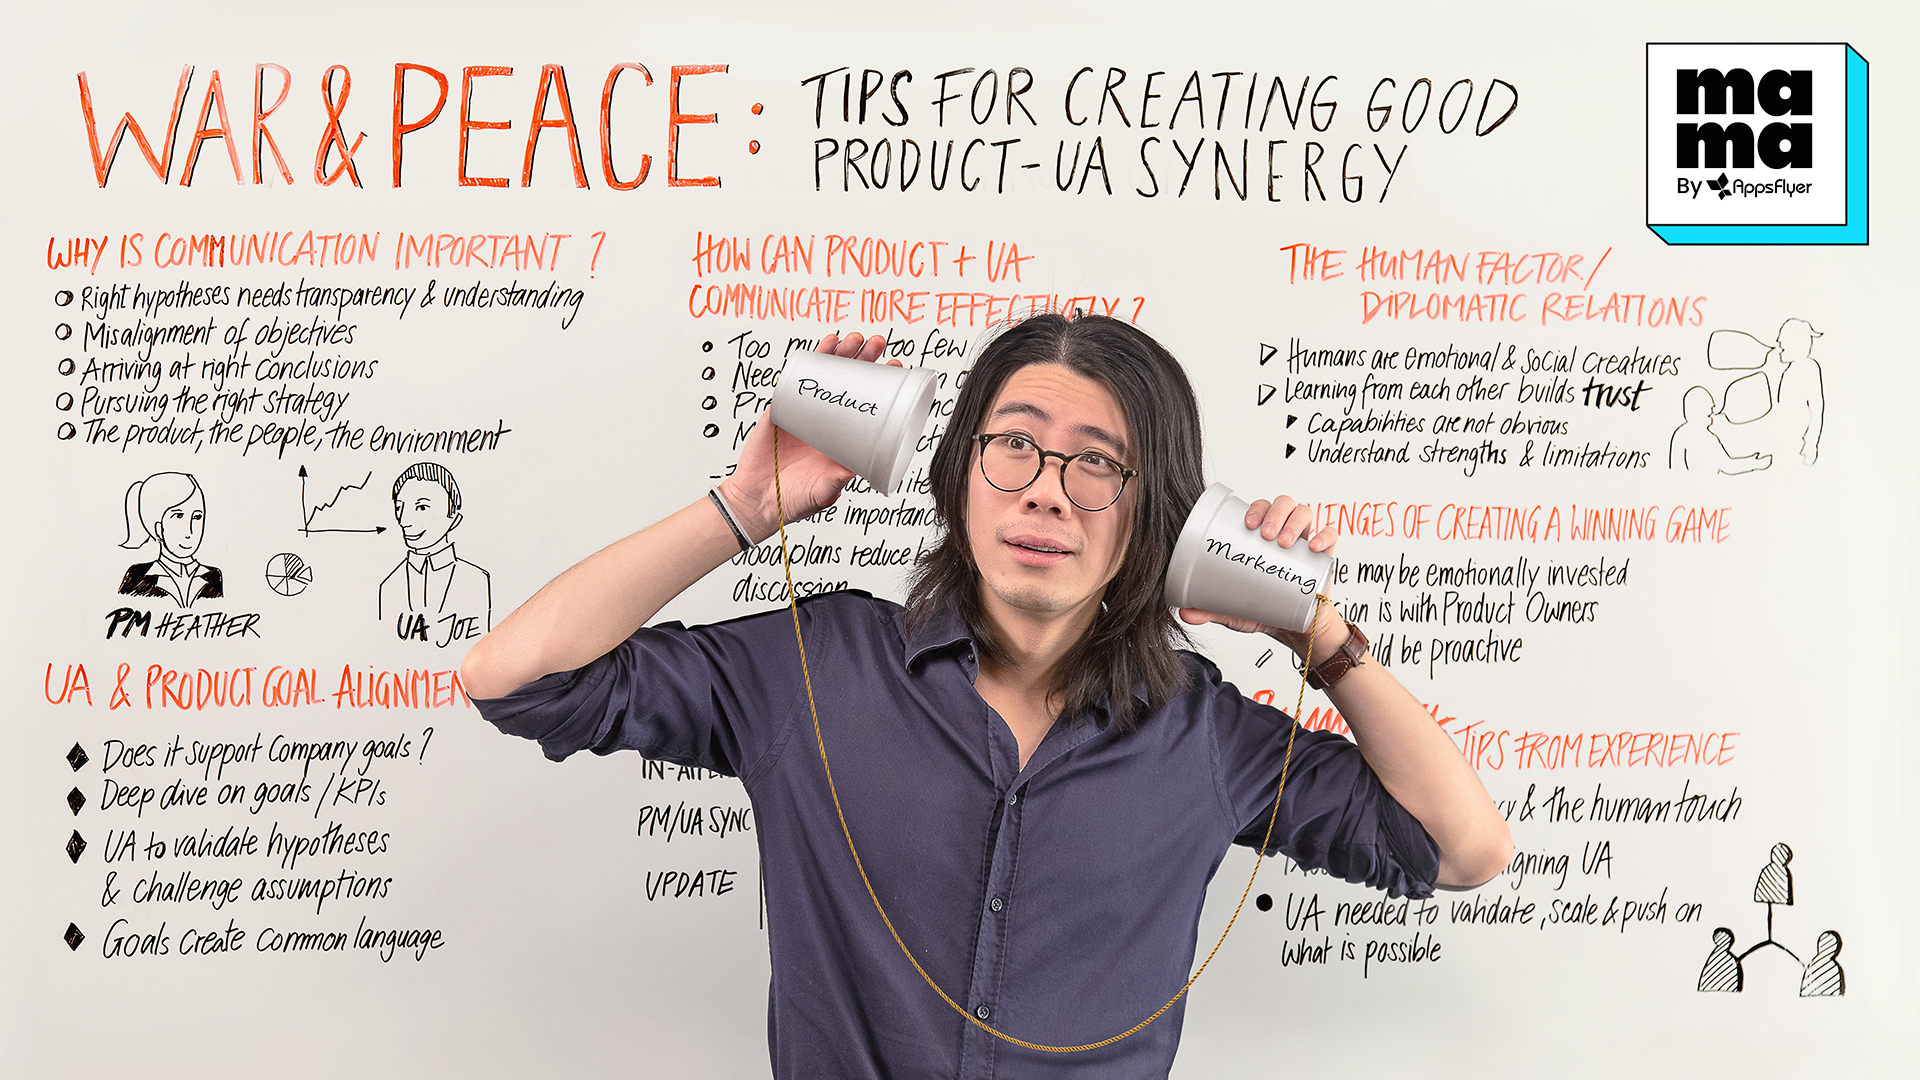 best practices for creating good Product-UA communication